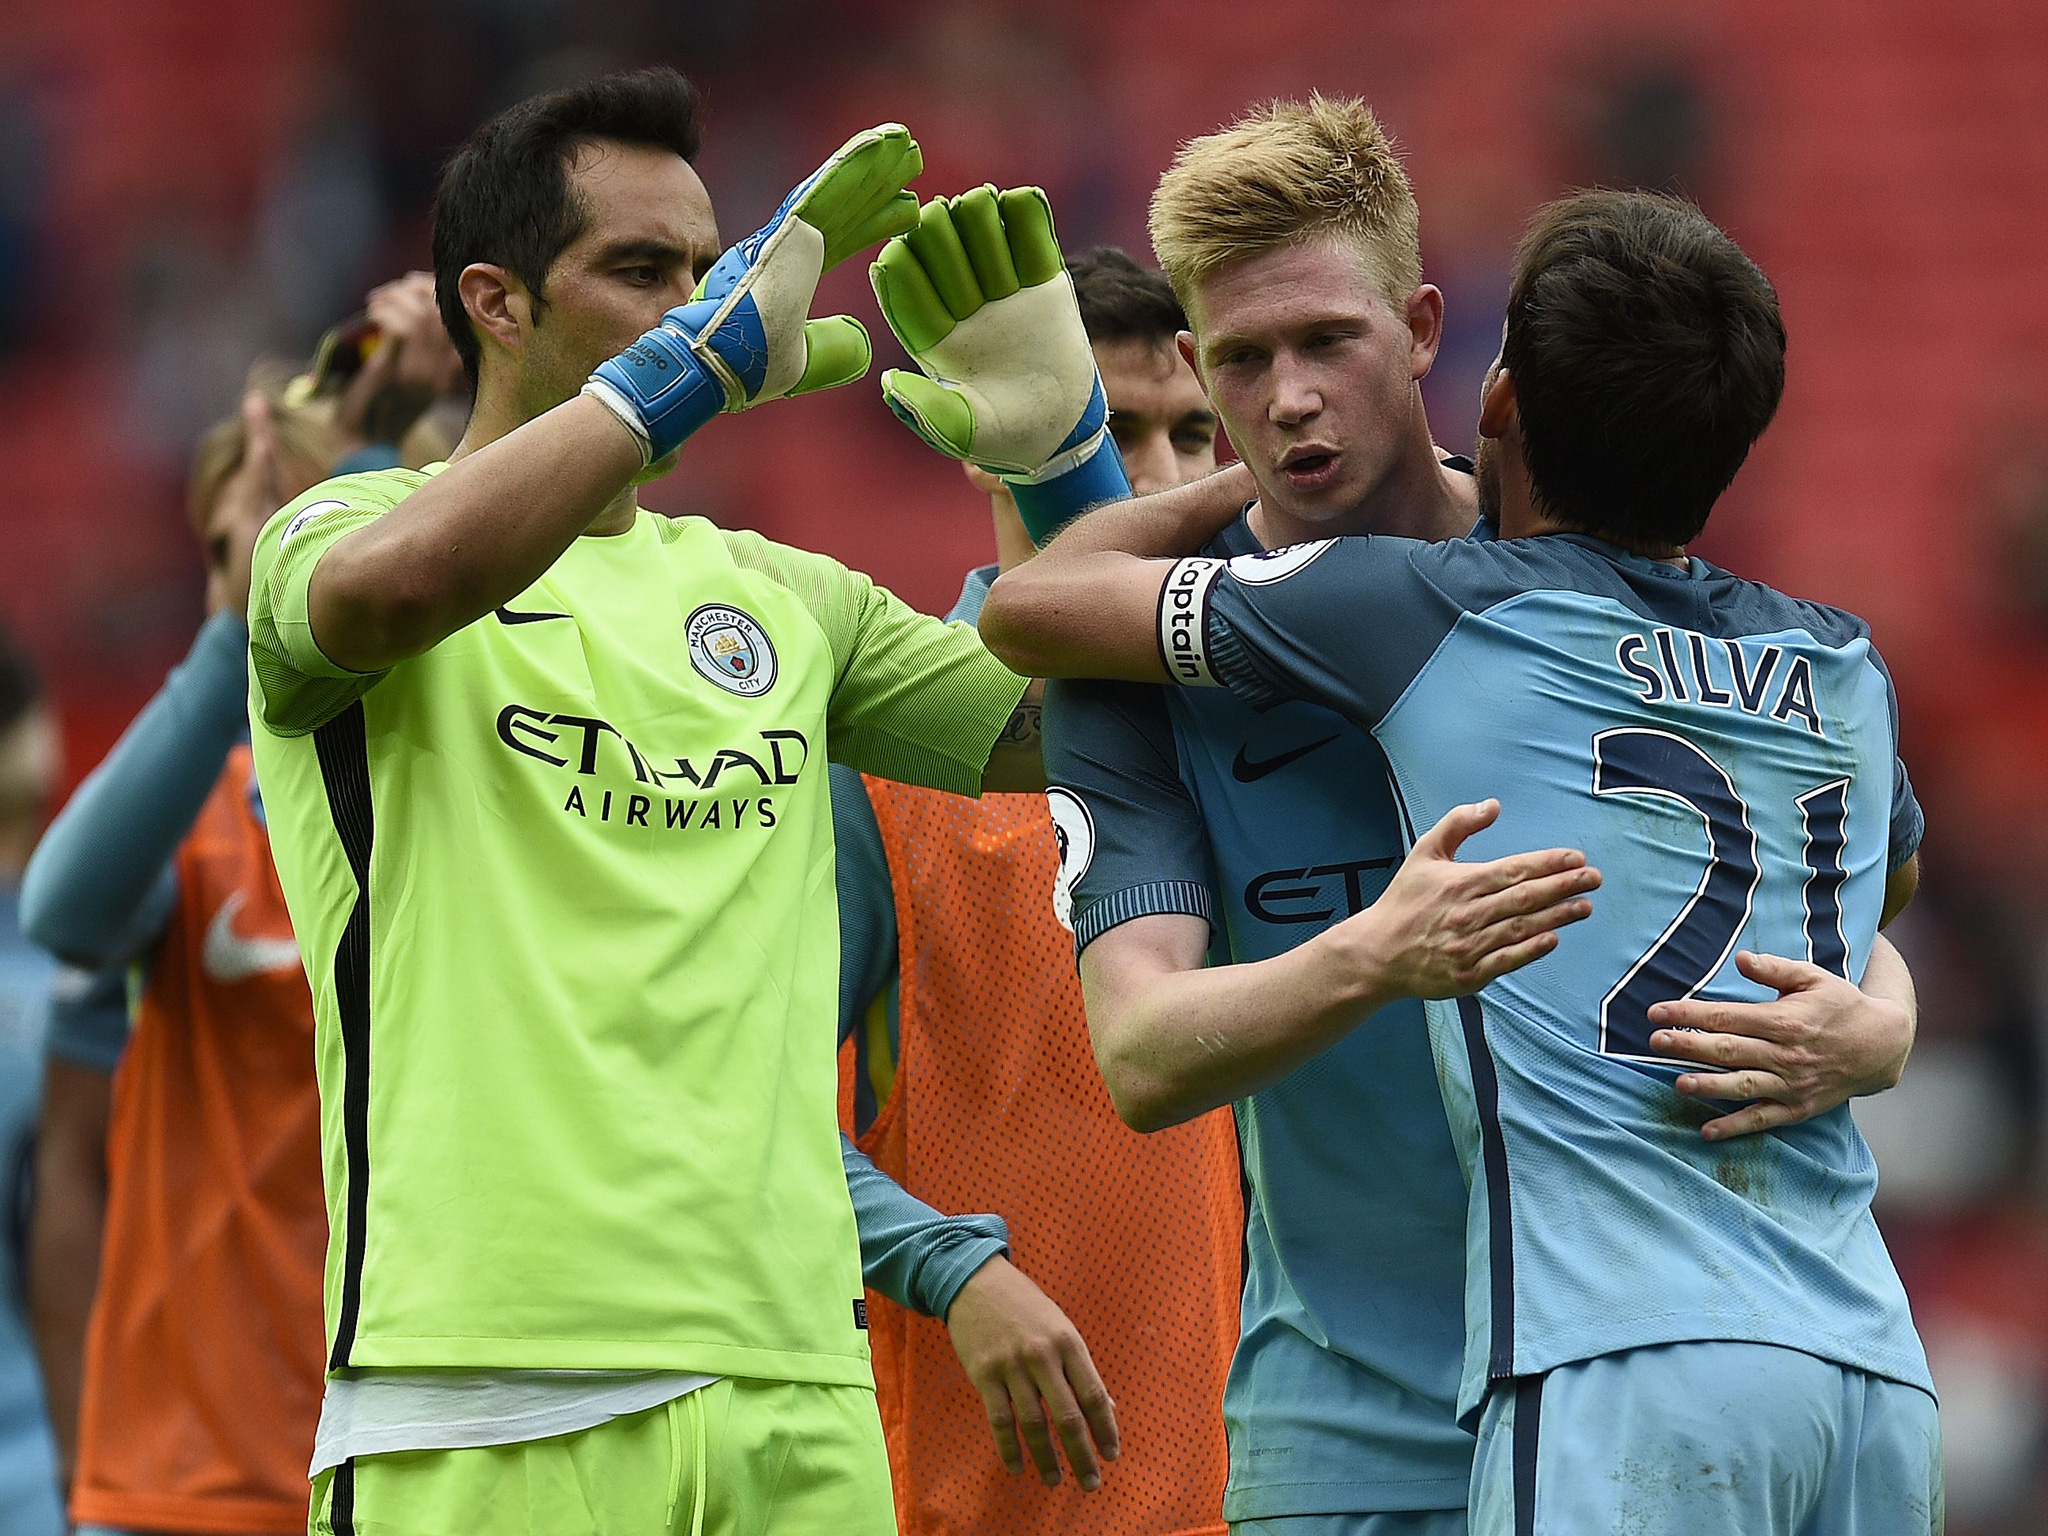 Mission Accomplished - City celebrate their derby day win.